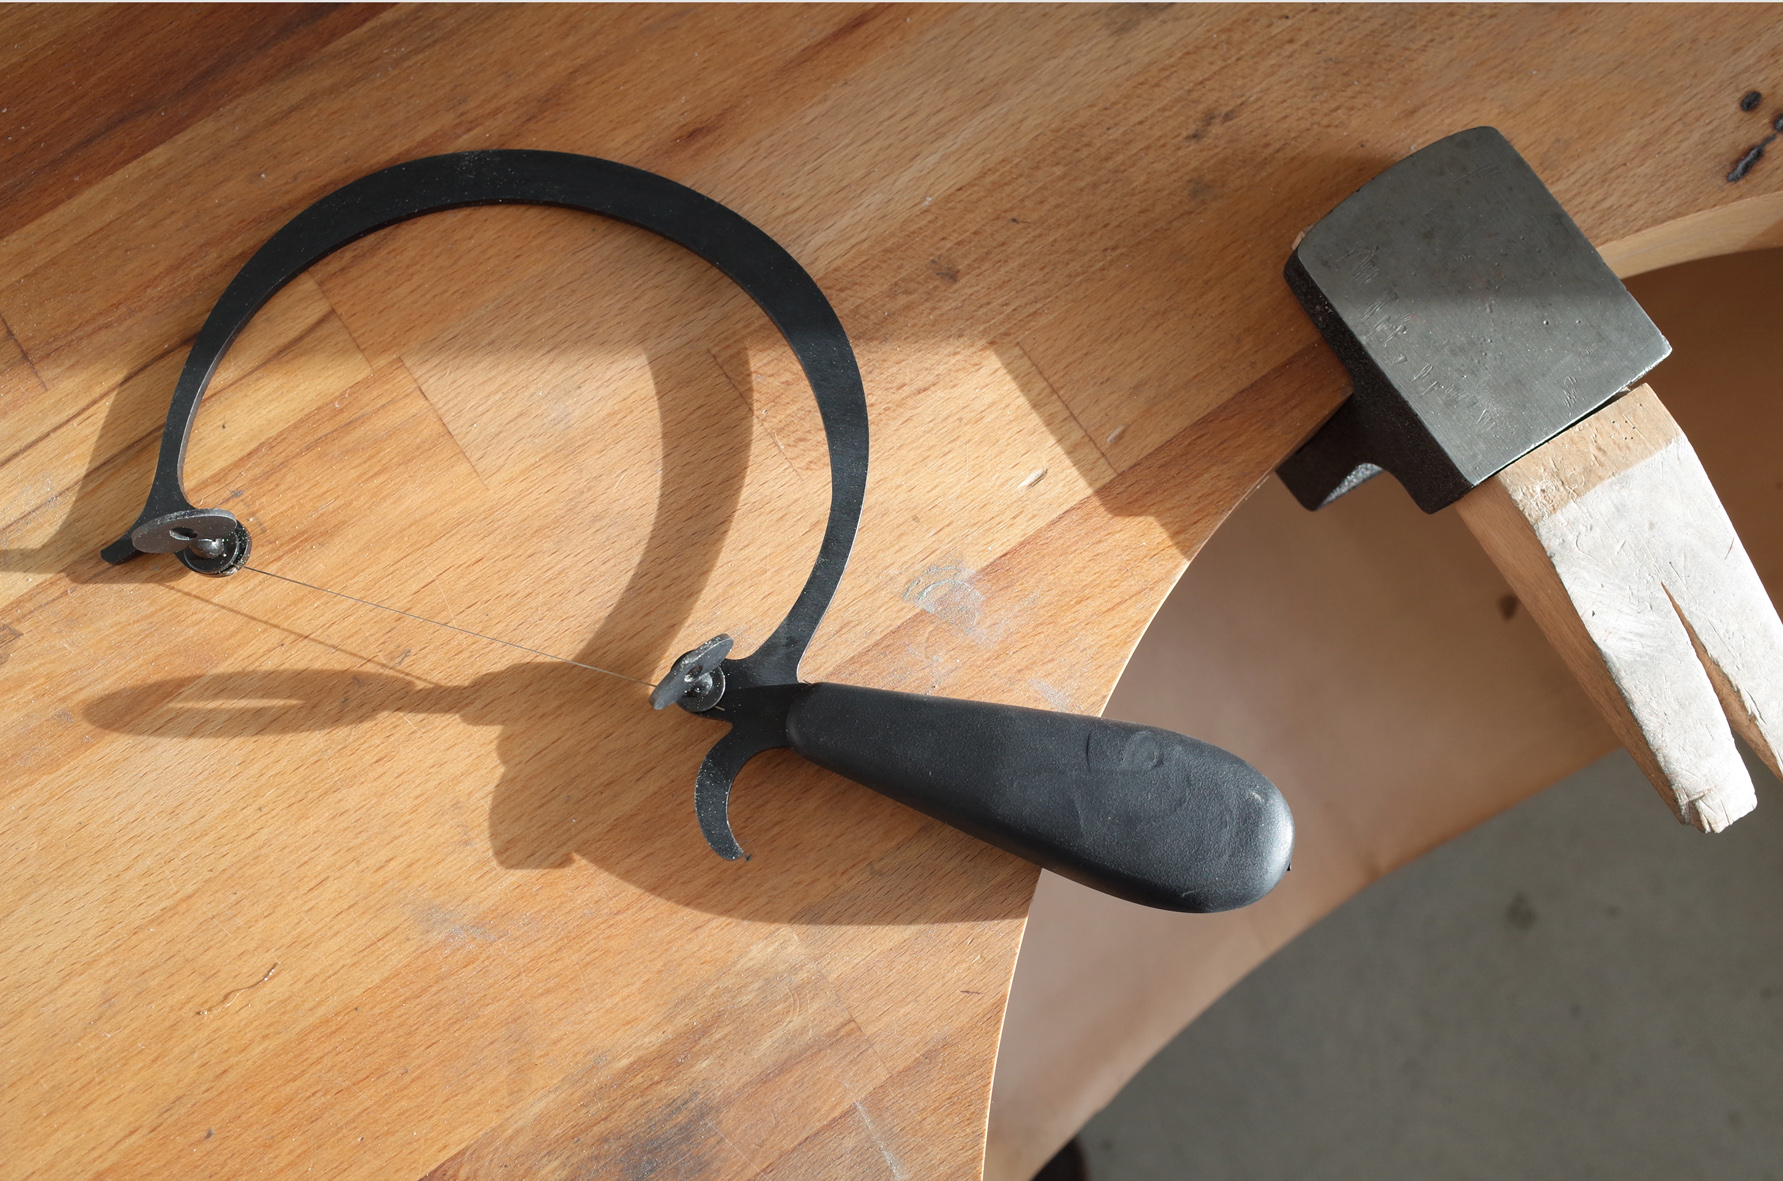 On the right, you can see my benchpeg. Used to support the jewellery while working, every piece that I make begins here.